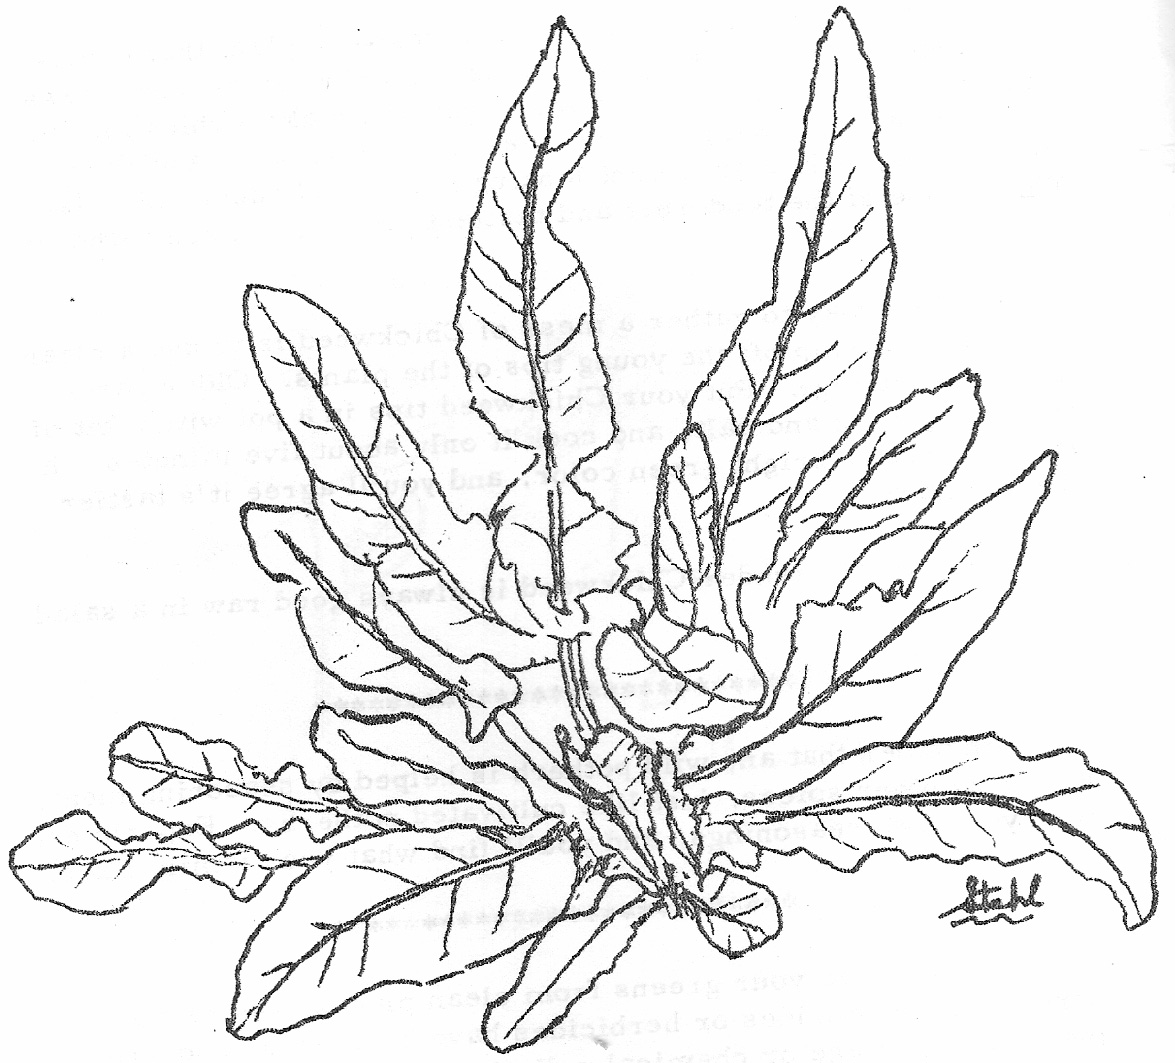 ocean plants coloring pages - photo#13